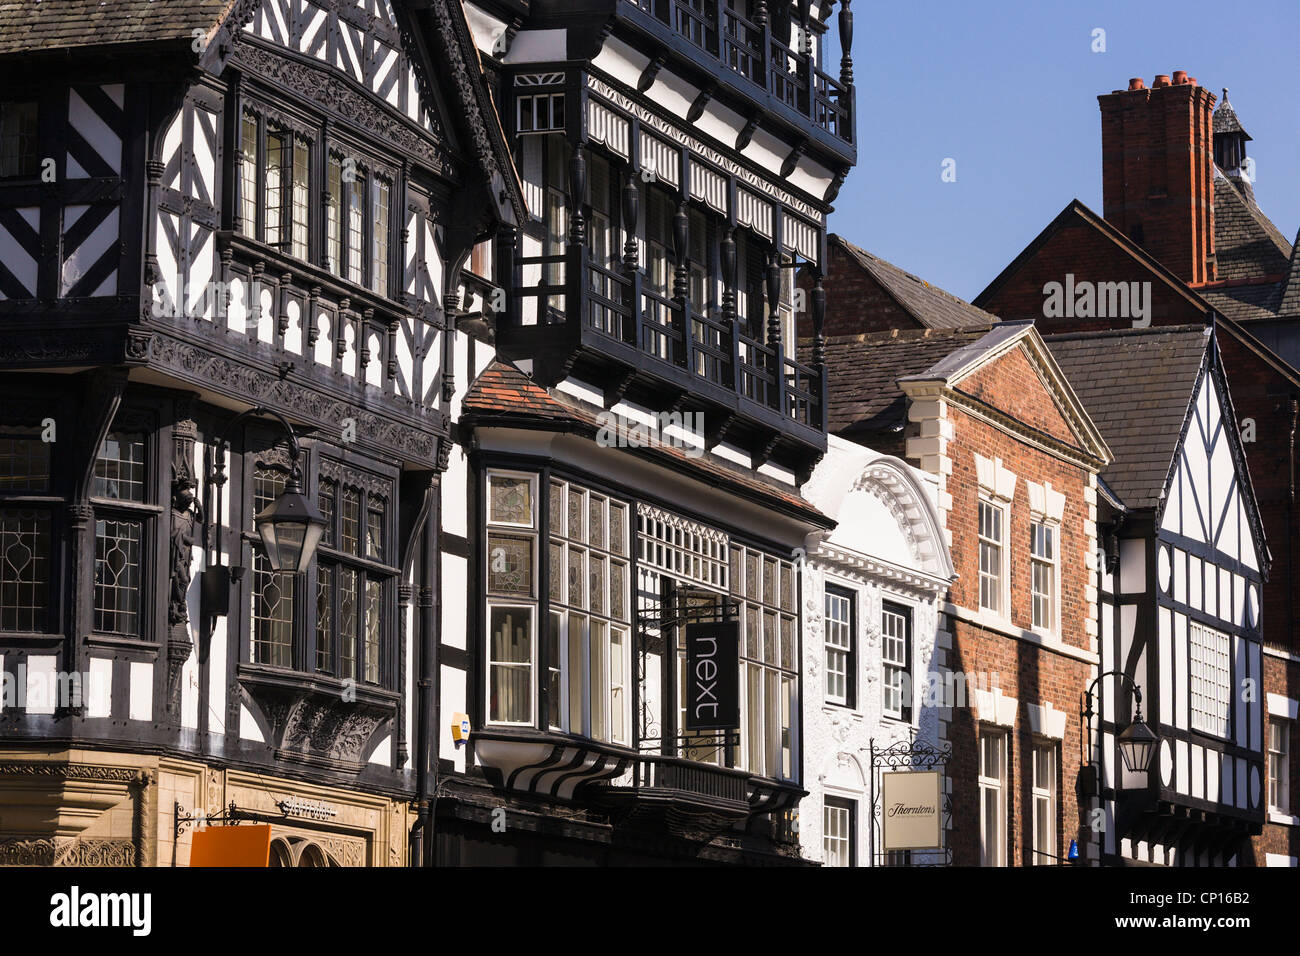 Half-timbered buildings, Chester - Stock Image